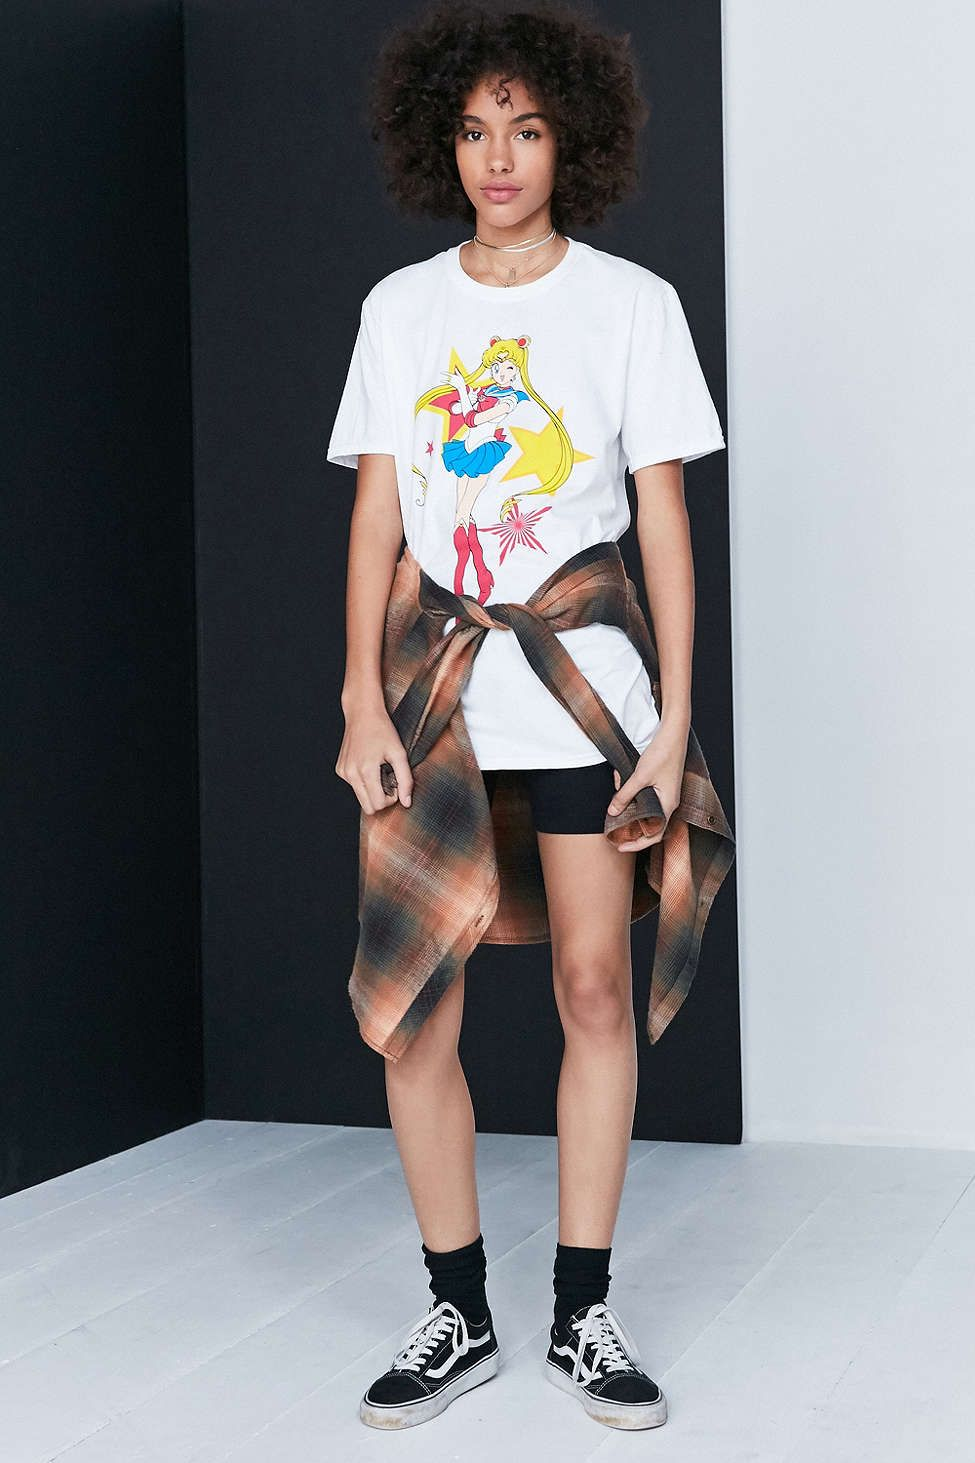 Urban Outfitters online exclusive Sailor Moon t-shirt! Buy here https://api.shopstyle.com/action/apiVisitRetailer?id=613205611&pid=uid6596-37261314-29&site=www.shopstyle.com.au